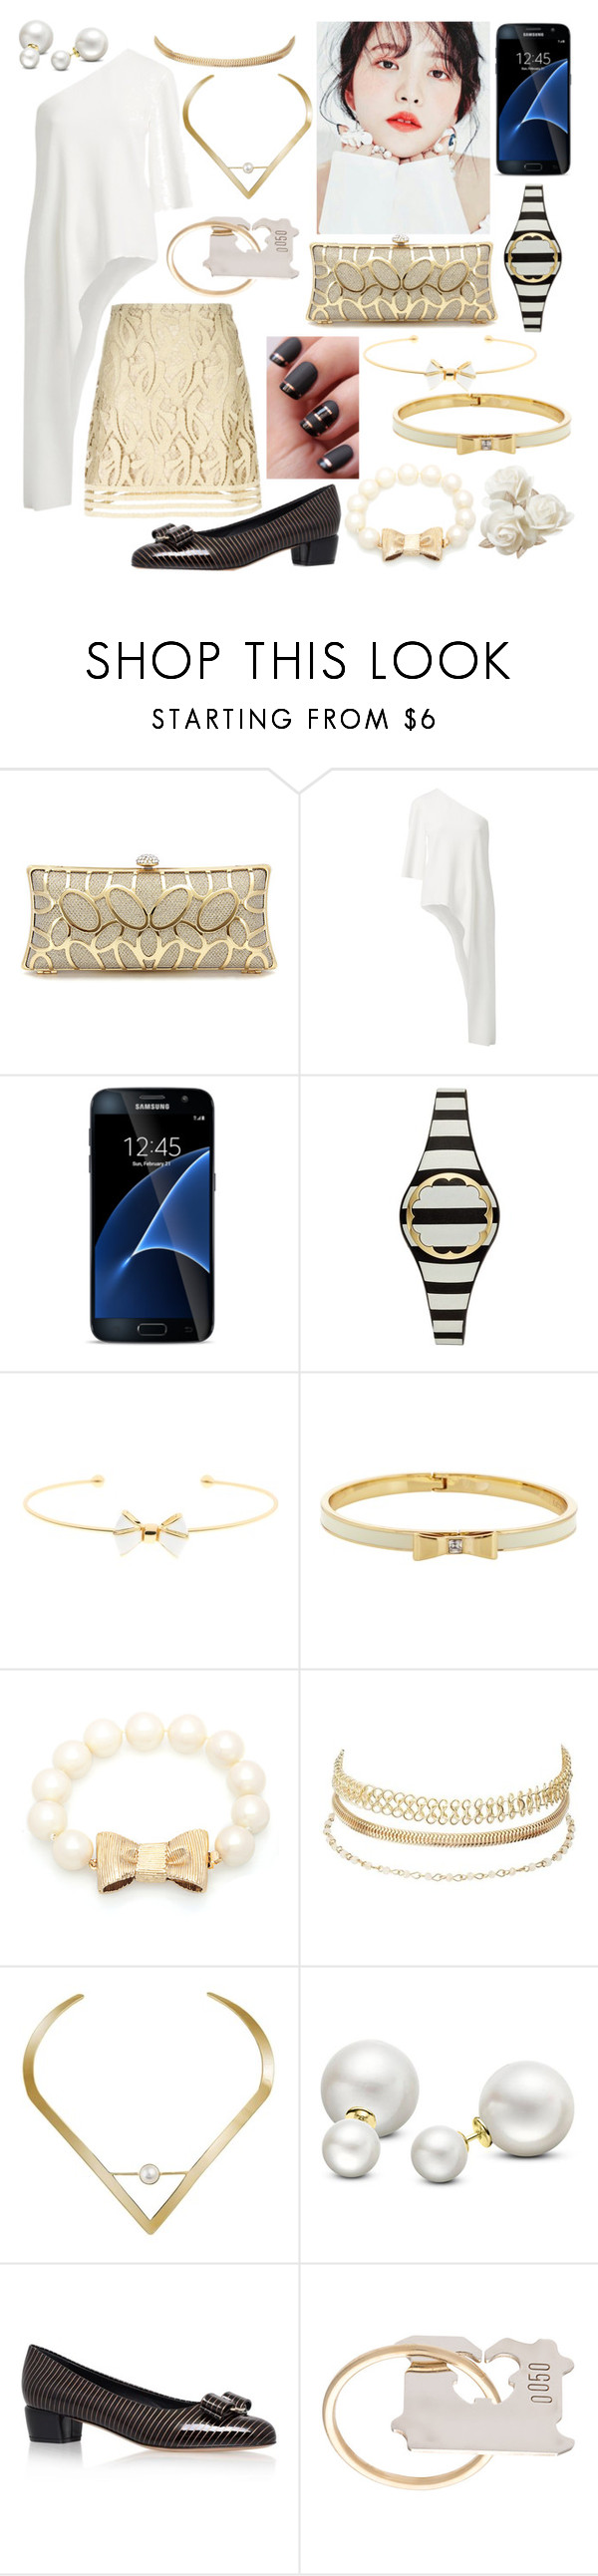 """Engagement Party"" by demeyaxd ❤ liked on Polyvore featuring GET LOST, Witchery, Samsung, Kate Spade, Ted Baker, Charlotte Russe, Edge of Ember, Allurez, Salvatore Ferragamo and Lauren Klassen"